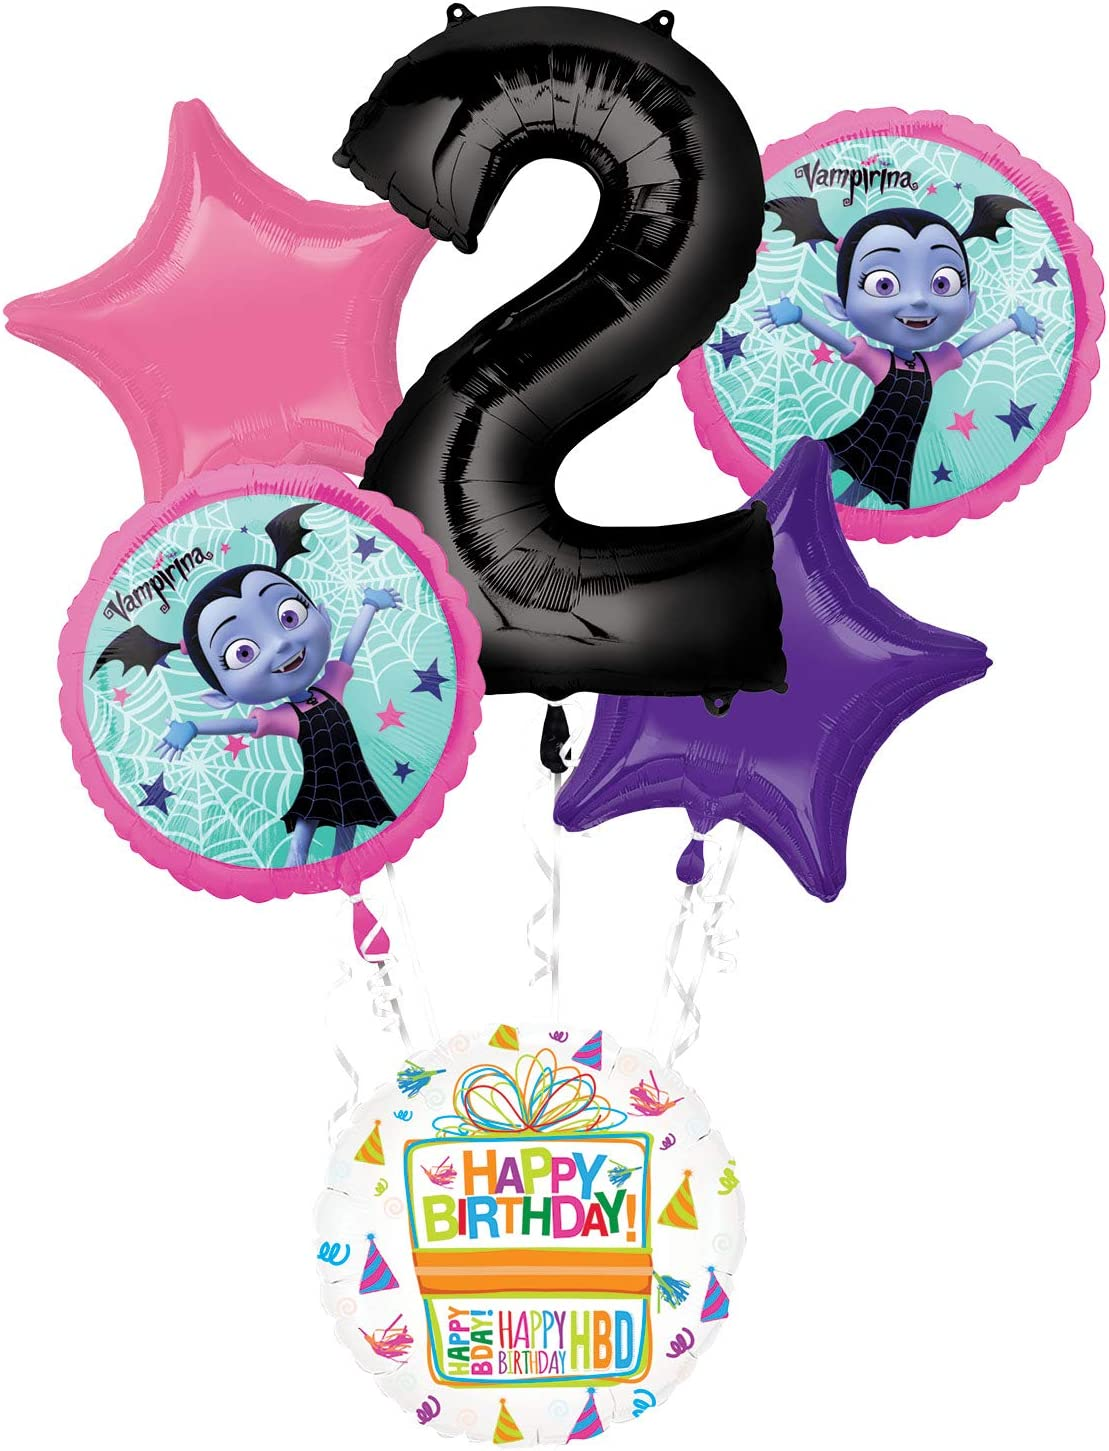 Mayflower Products Vampirina 2nd Birthday Party Supplies Balloon Bouquet Decorations